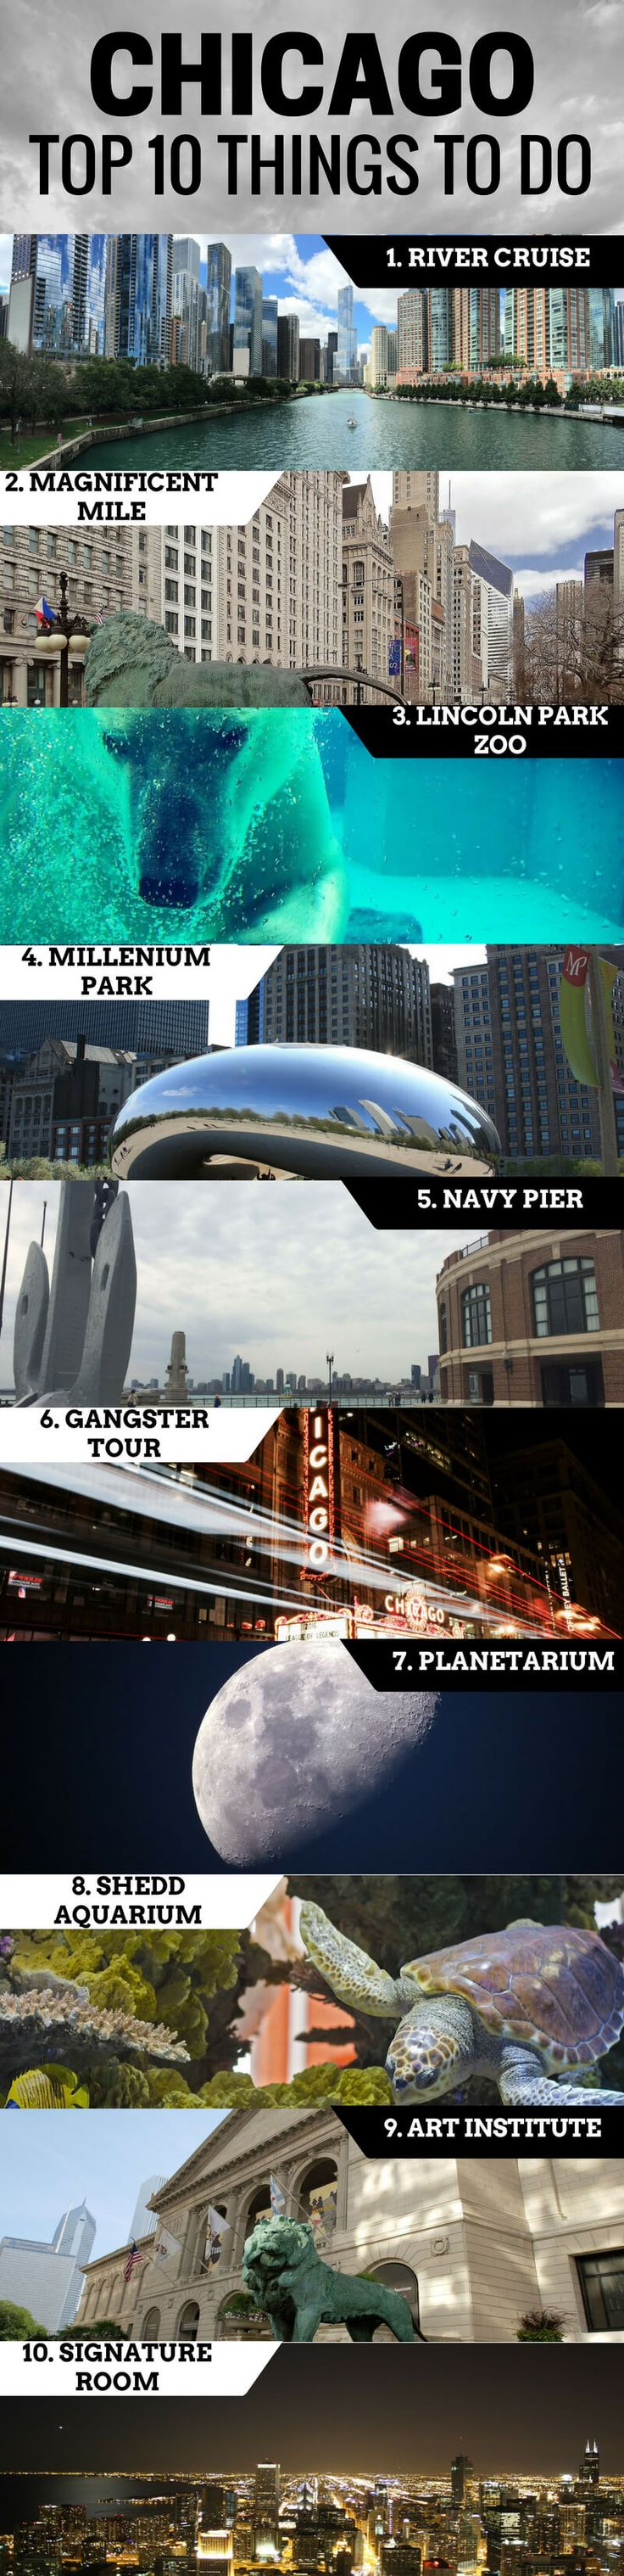 48 Hours in Chicago: Things To Do, Where To Stay & Where To Eat! Click for all of the Windy City's Highlights to make help plan your weekend trip ********************************************************************************* Chicago Things To Do | Chicago Weekend Guide | Top Things To Do in Chicago | Tourst Attractions Chicago | What to eat in Chicago